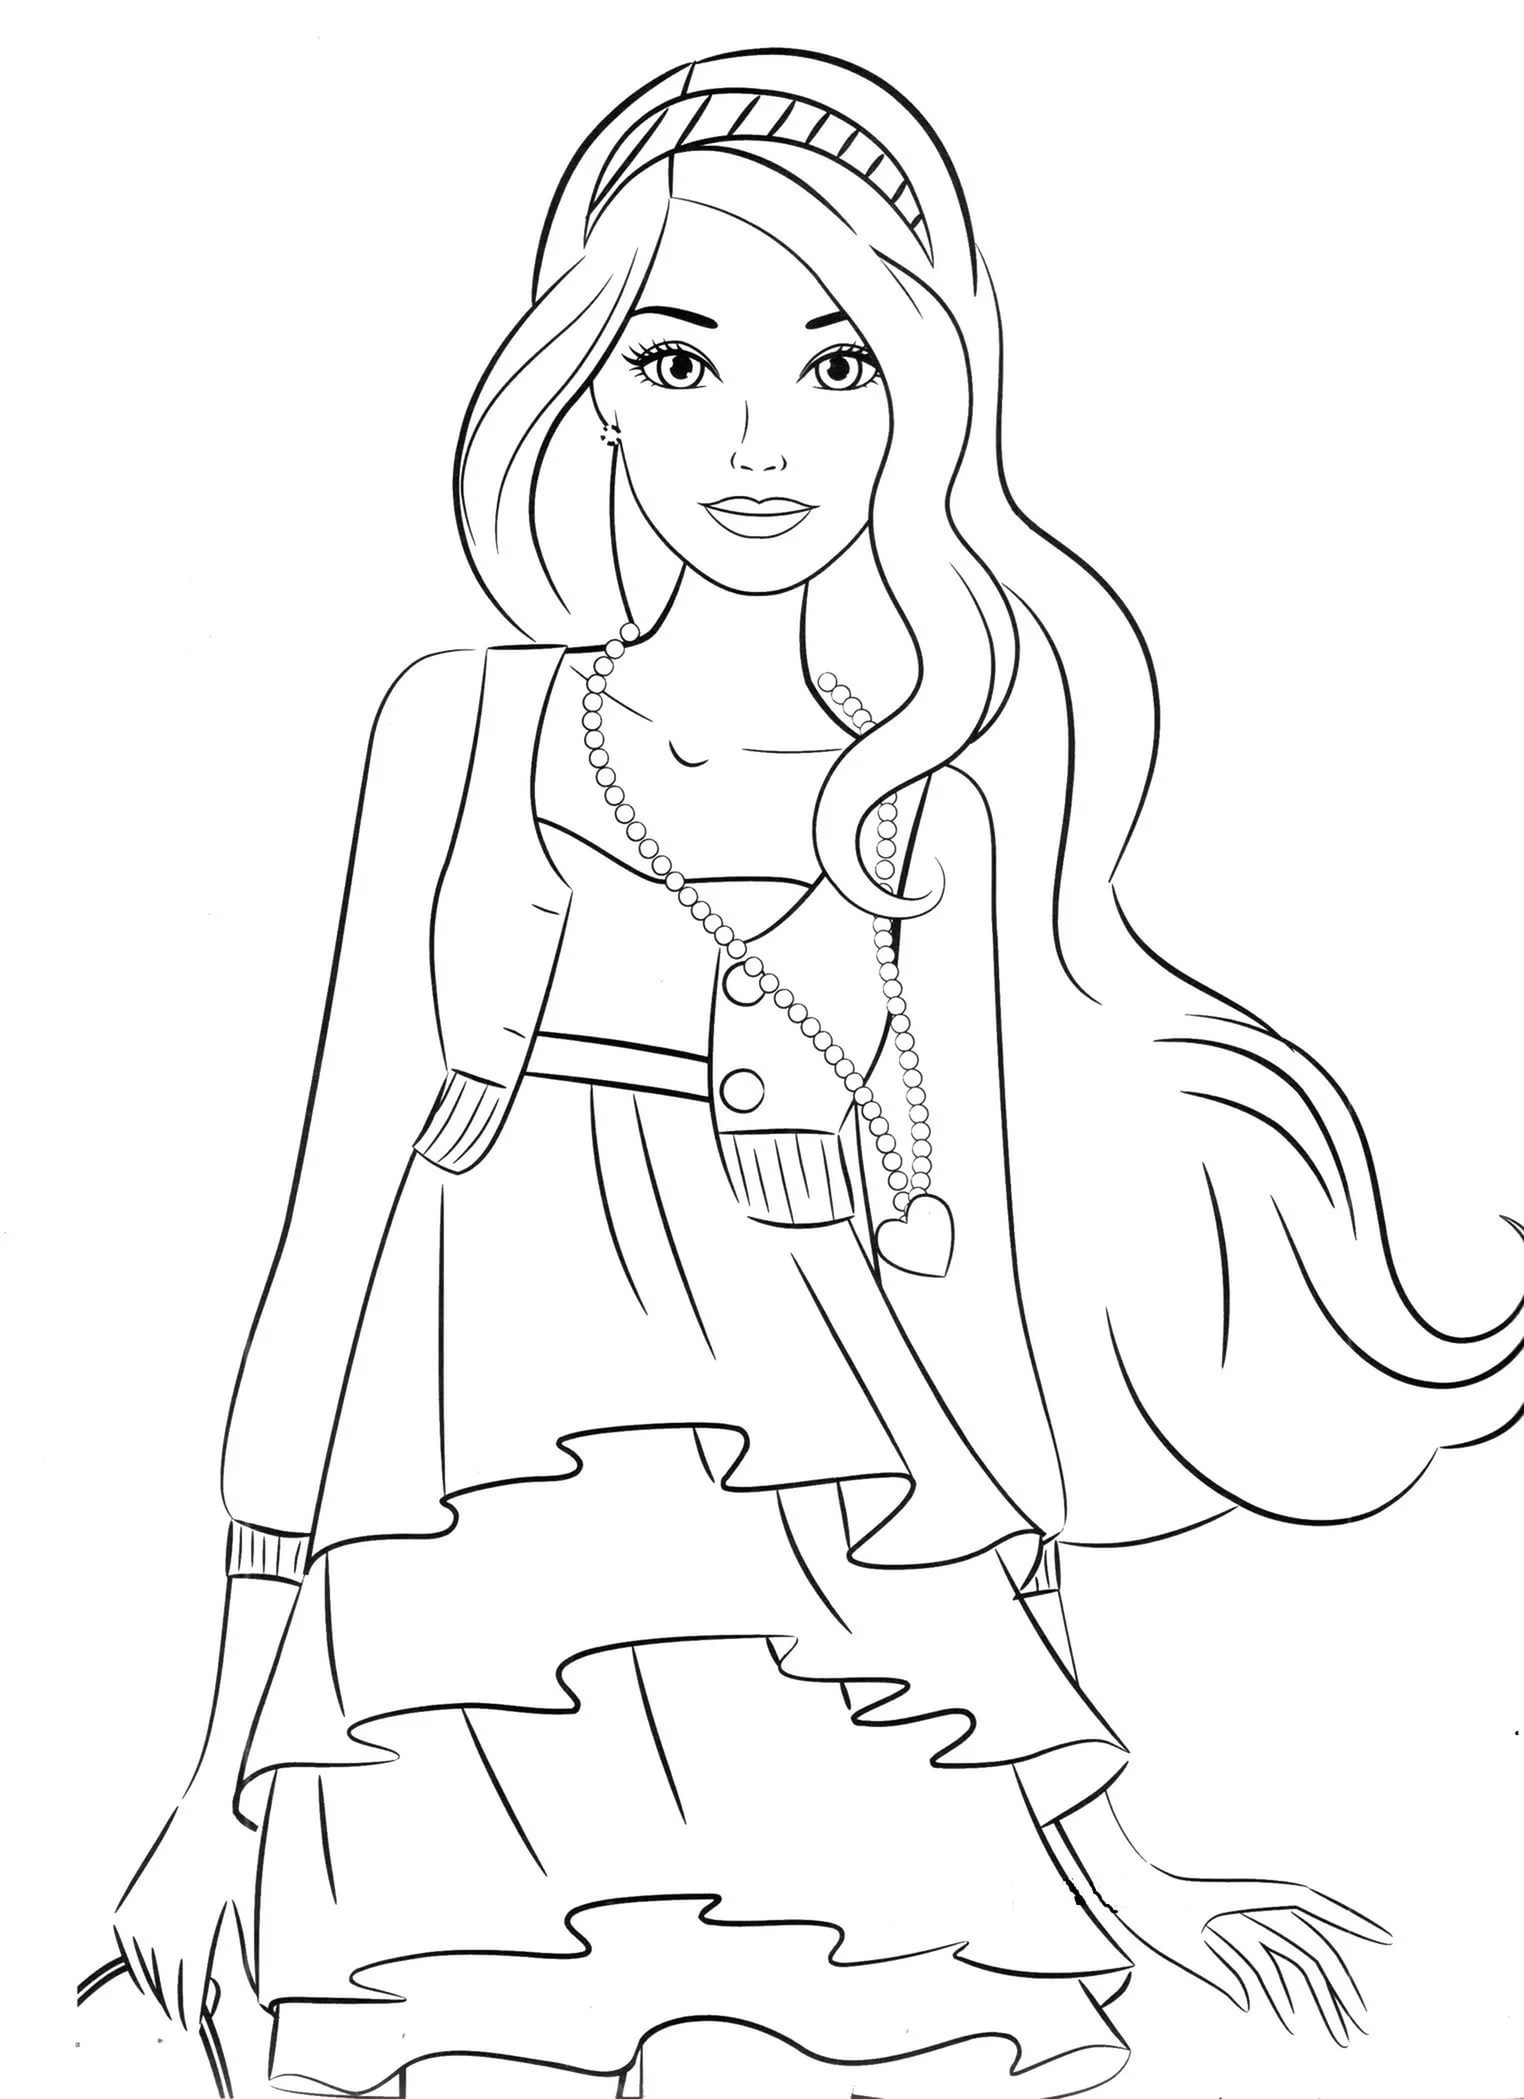 Free Printable Coloring Sheets For 10 Year Olds  Coloring pages for 8 9 10 year old girls to and